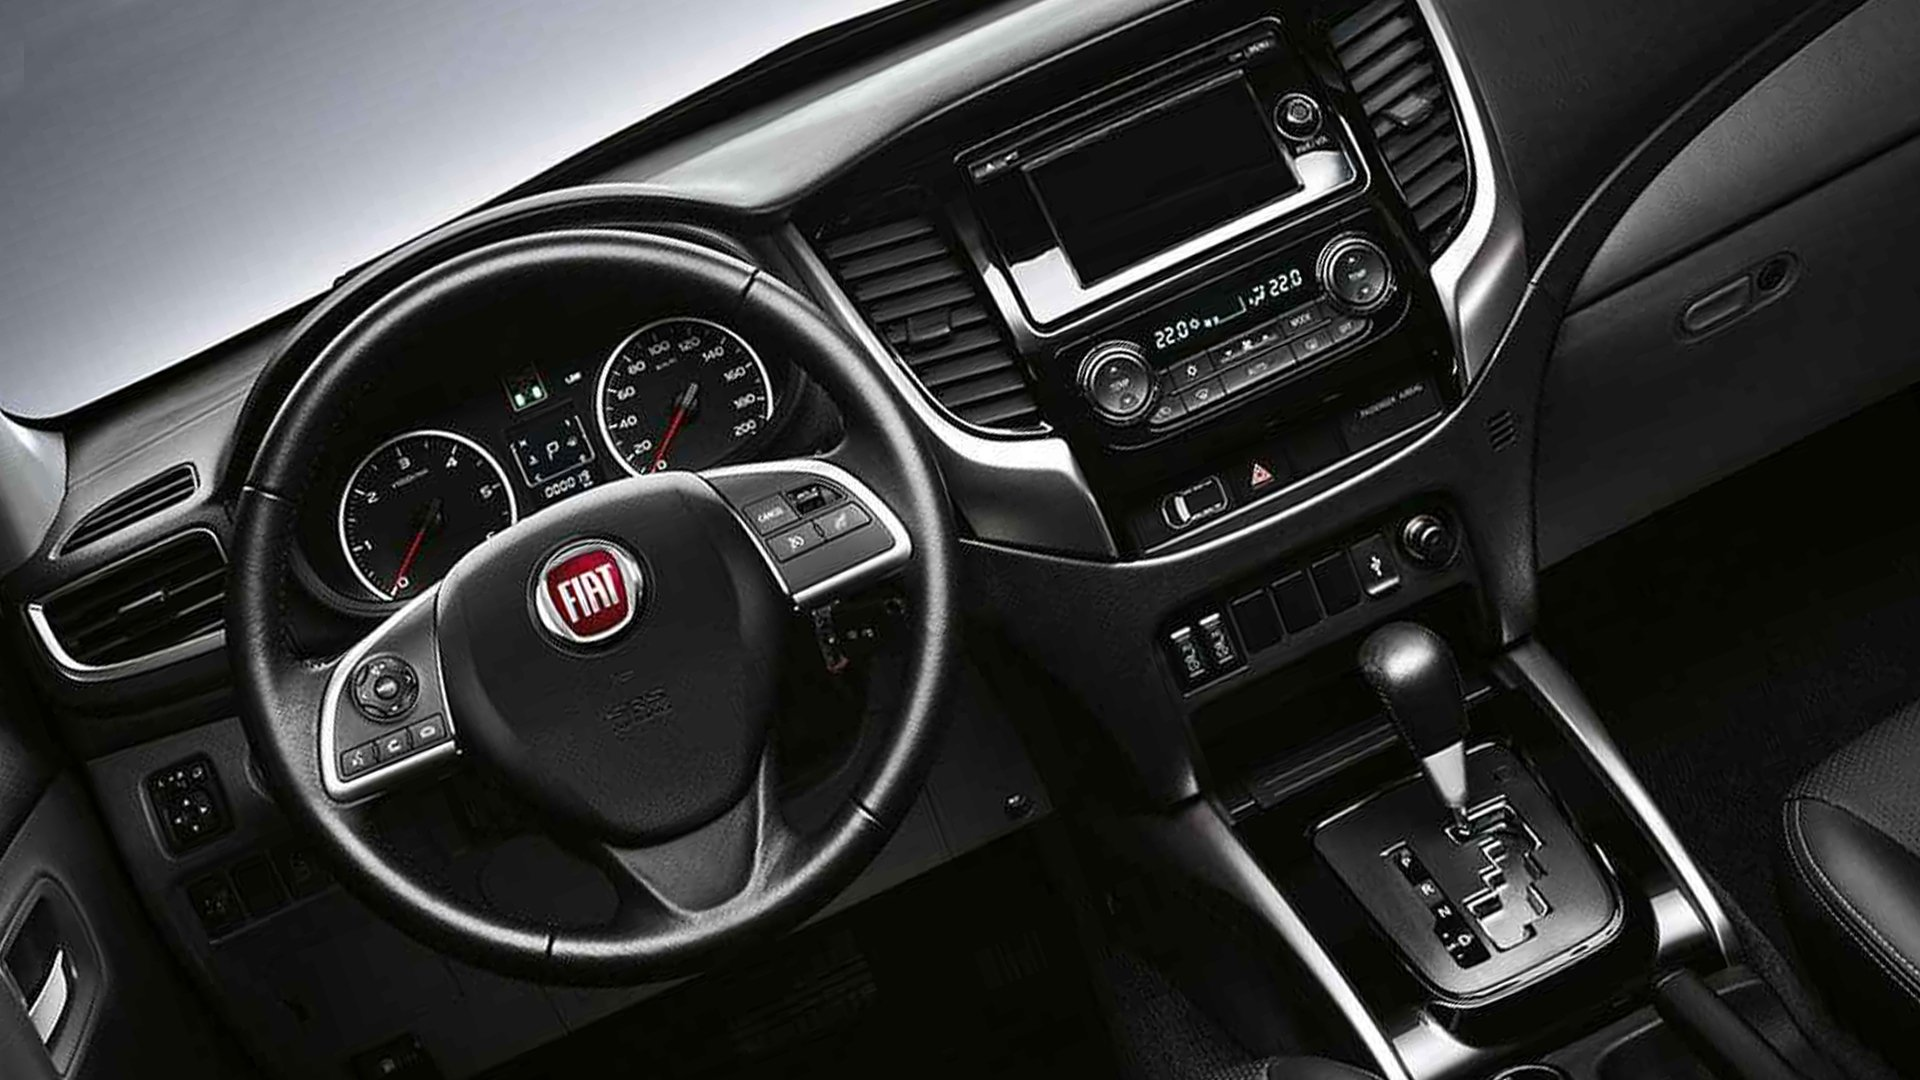 New 2019 Fiat Fullback Interior Design